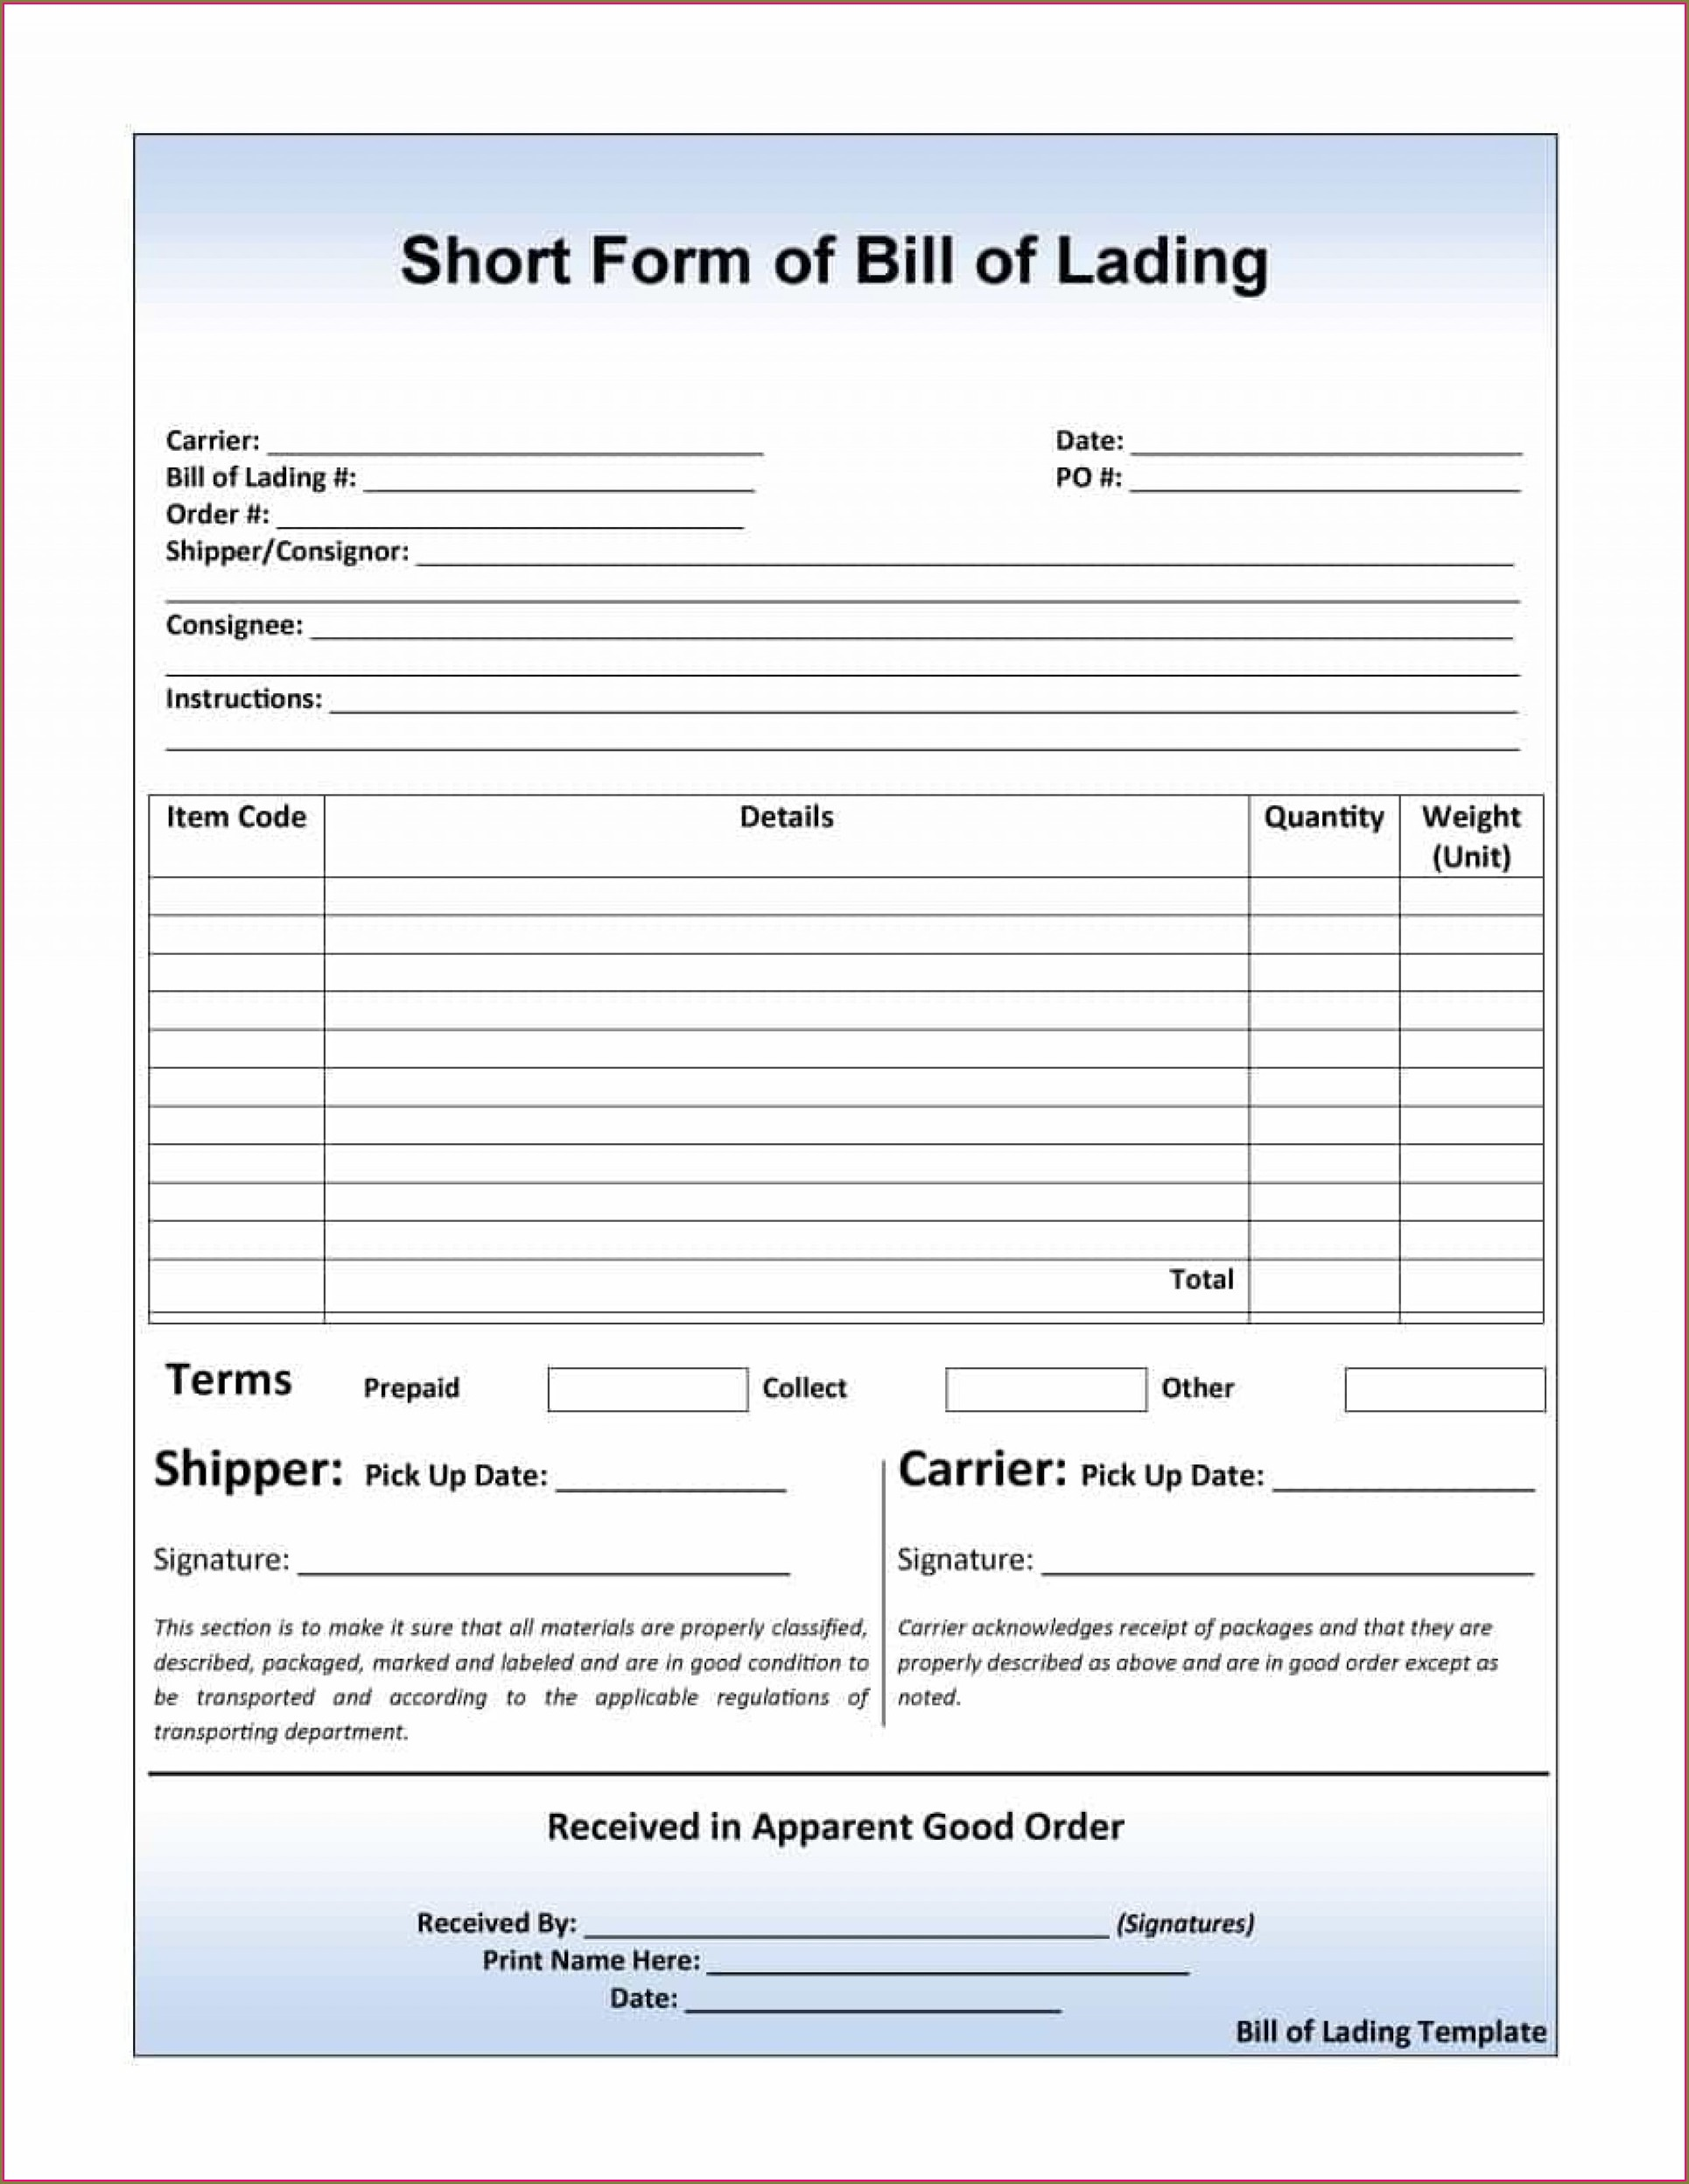 Bill Of Lading Short Form Template Word